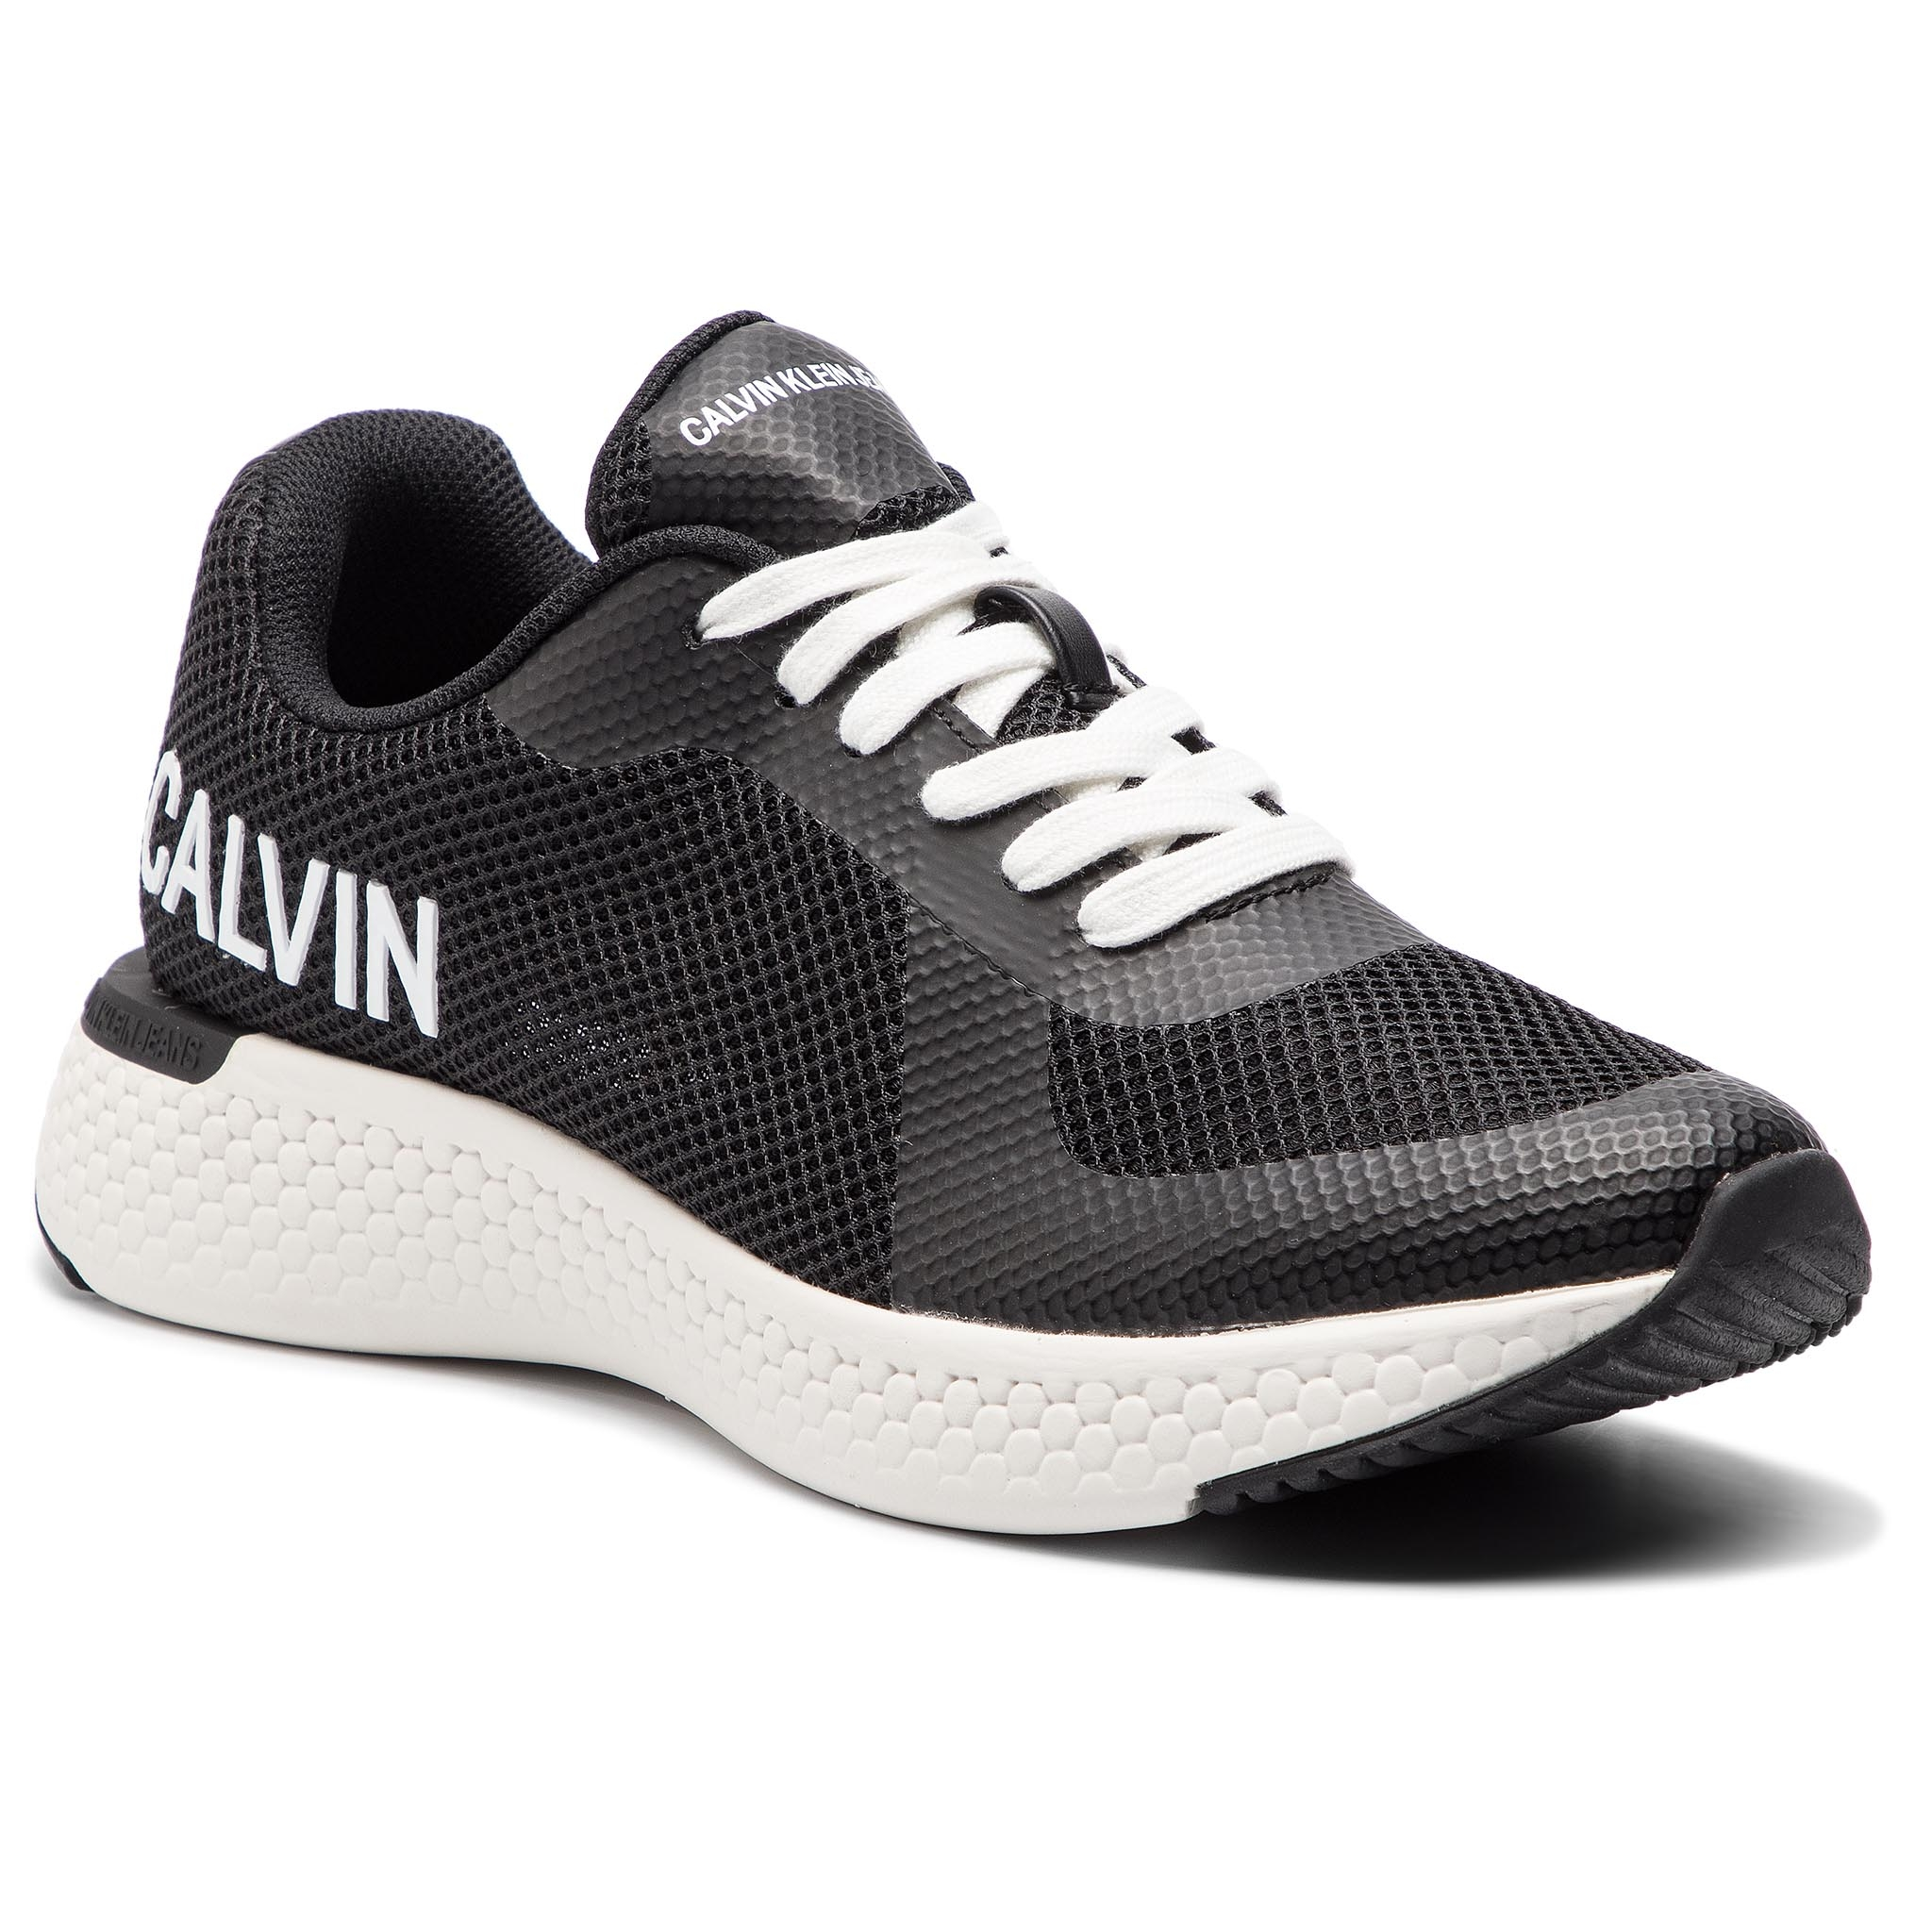 Image of Sneakers CALVIN KLEIN JEANS - Amos S0584 Black